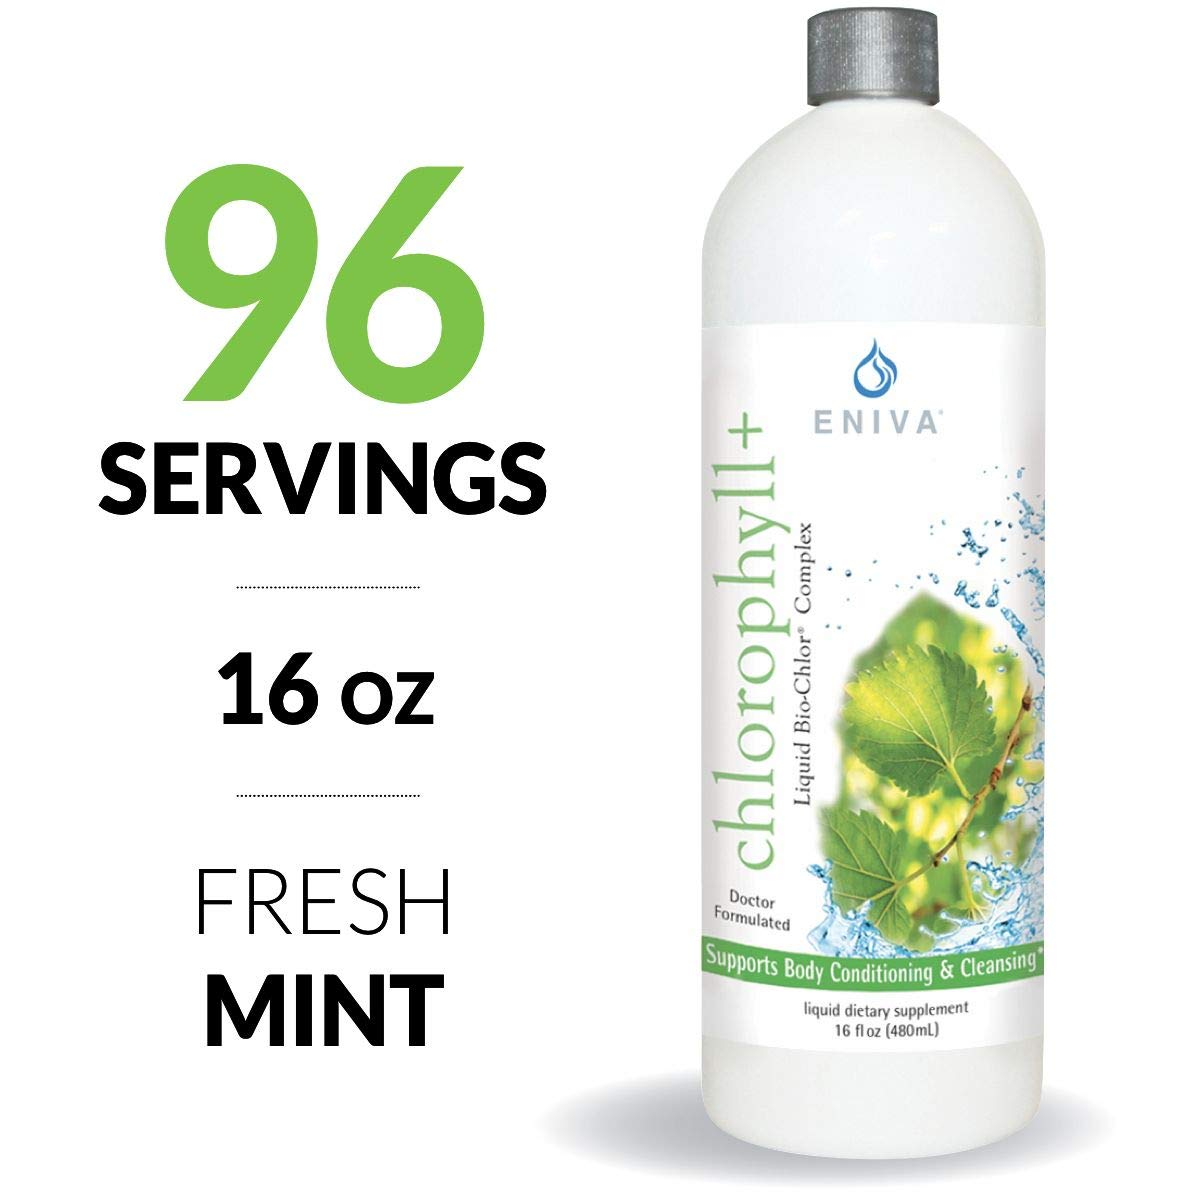 Eniva Liquid Chlorophyll - 16oz. Alcohol Free. Gluten Free. Non GMO. Cold Processed. Paraben Free. Most Complete Formula. Made in USA.